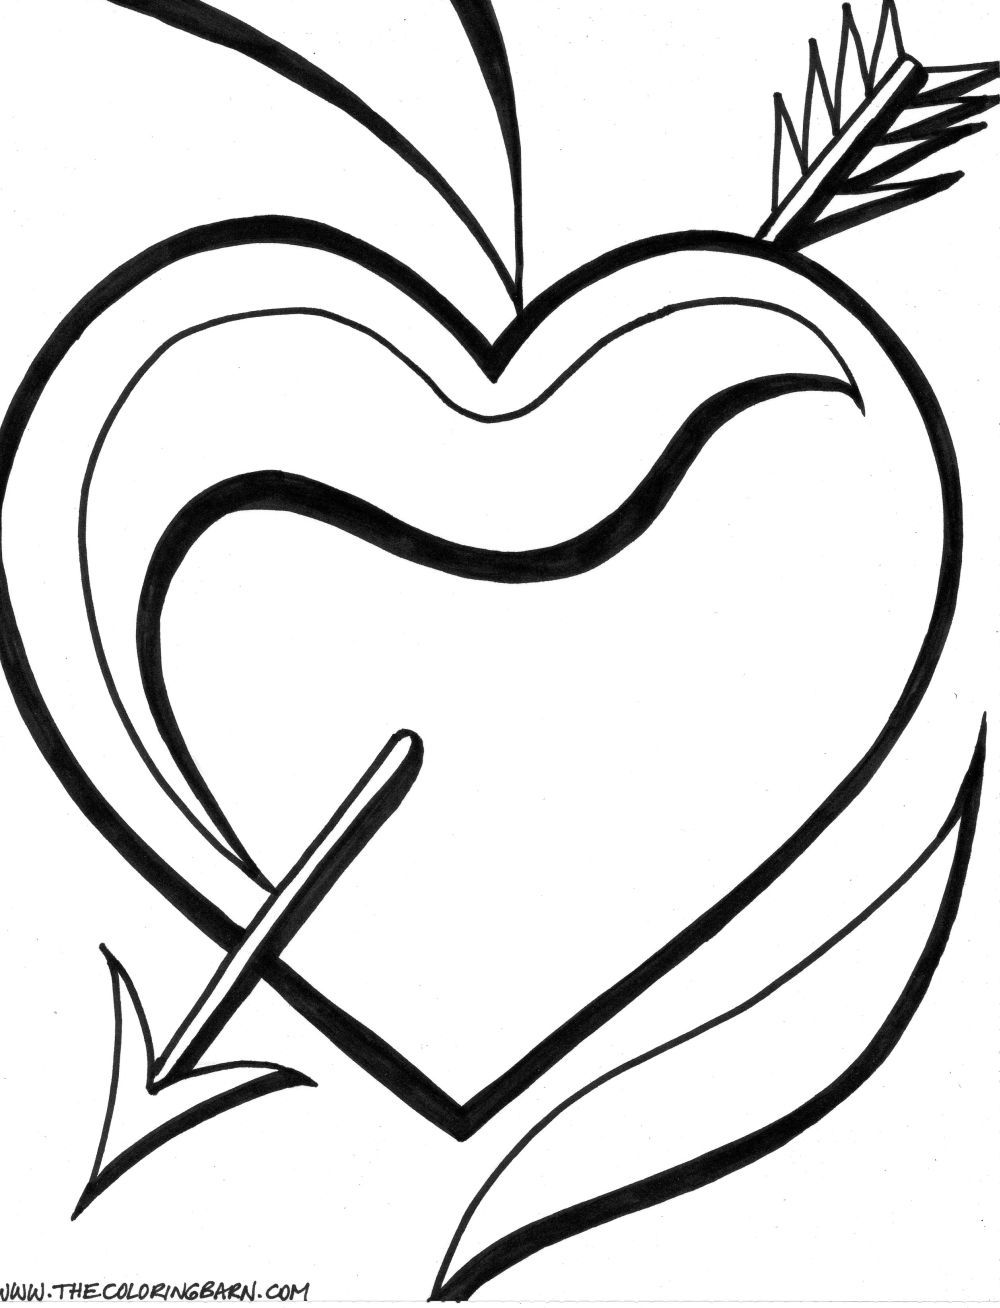 heart coloring pages and heart coloring page roses valentine coloring page tied hearts - Coloring Pages Hearts 2